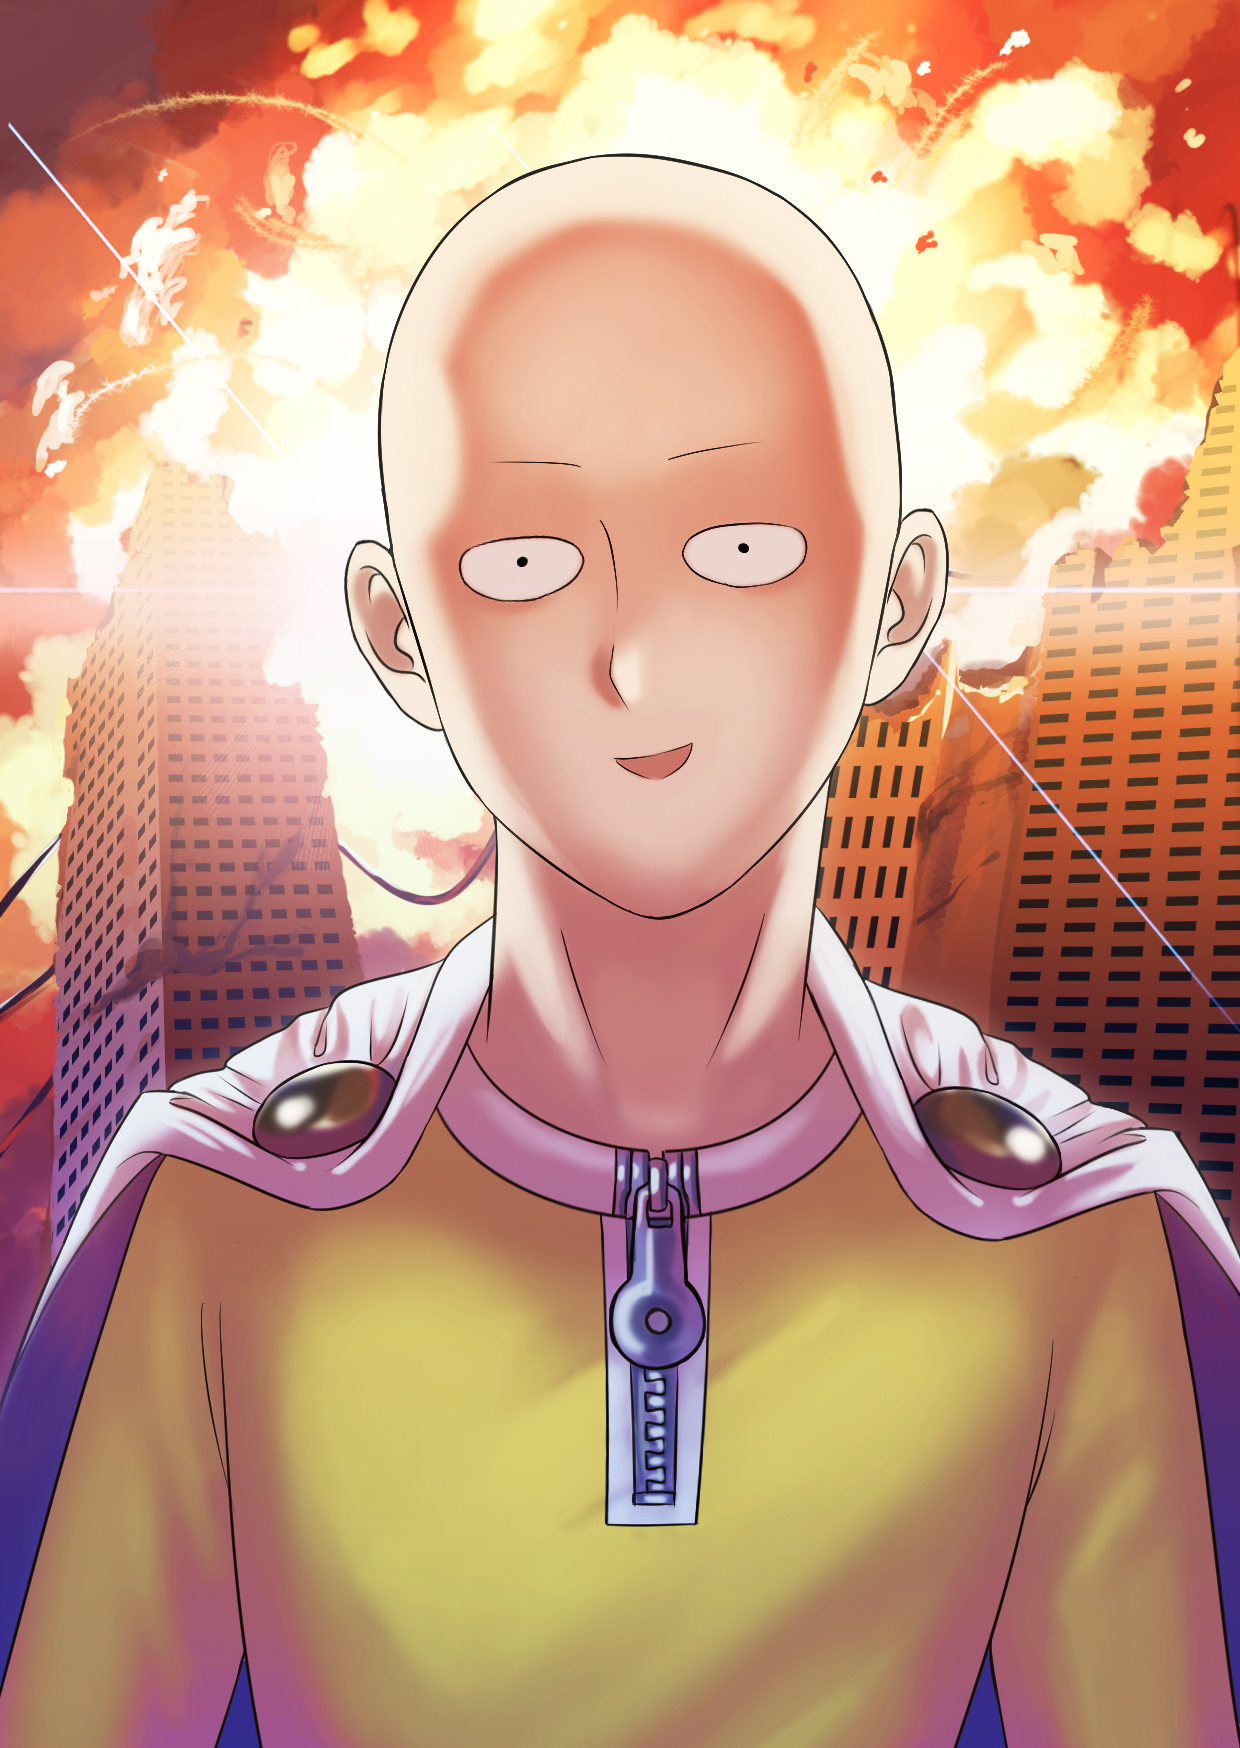 Saitama One Punch Man Mobile Wallpaper 2002383 Zerochan Anime